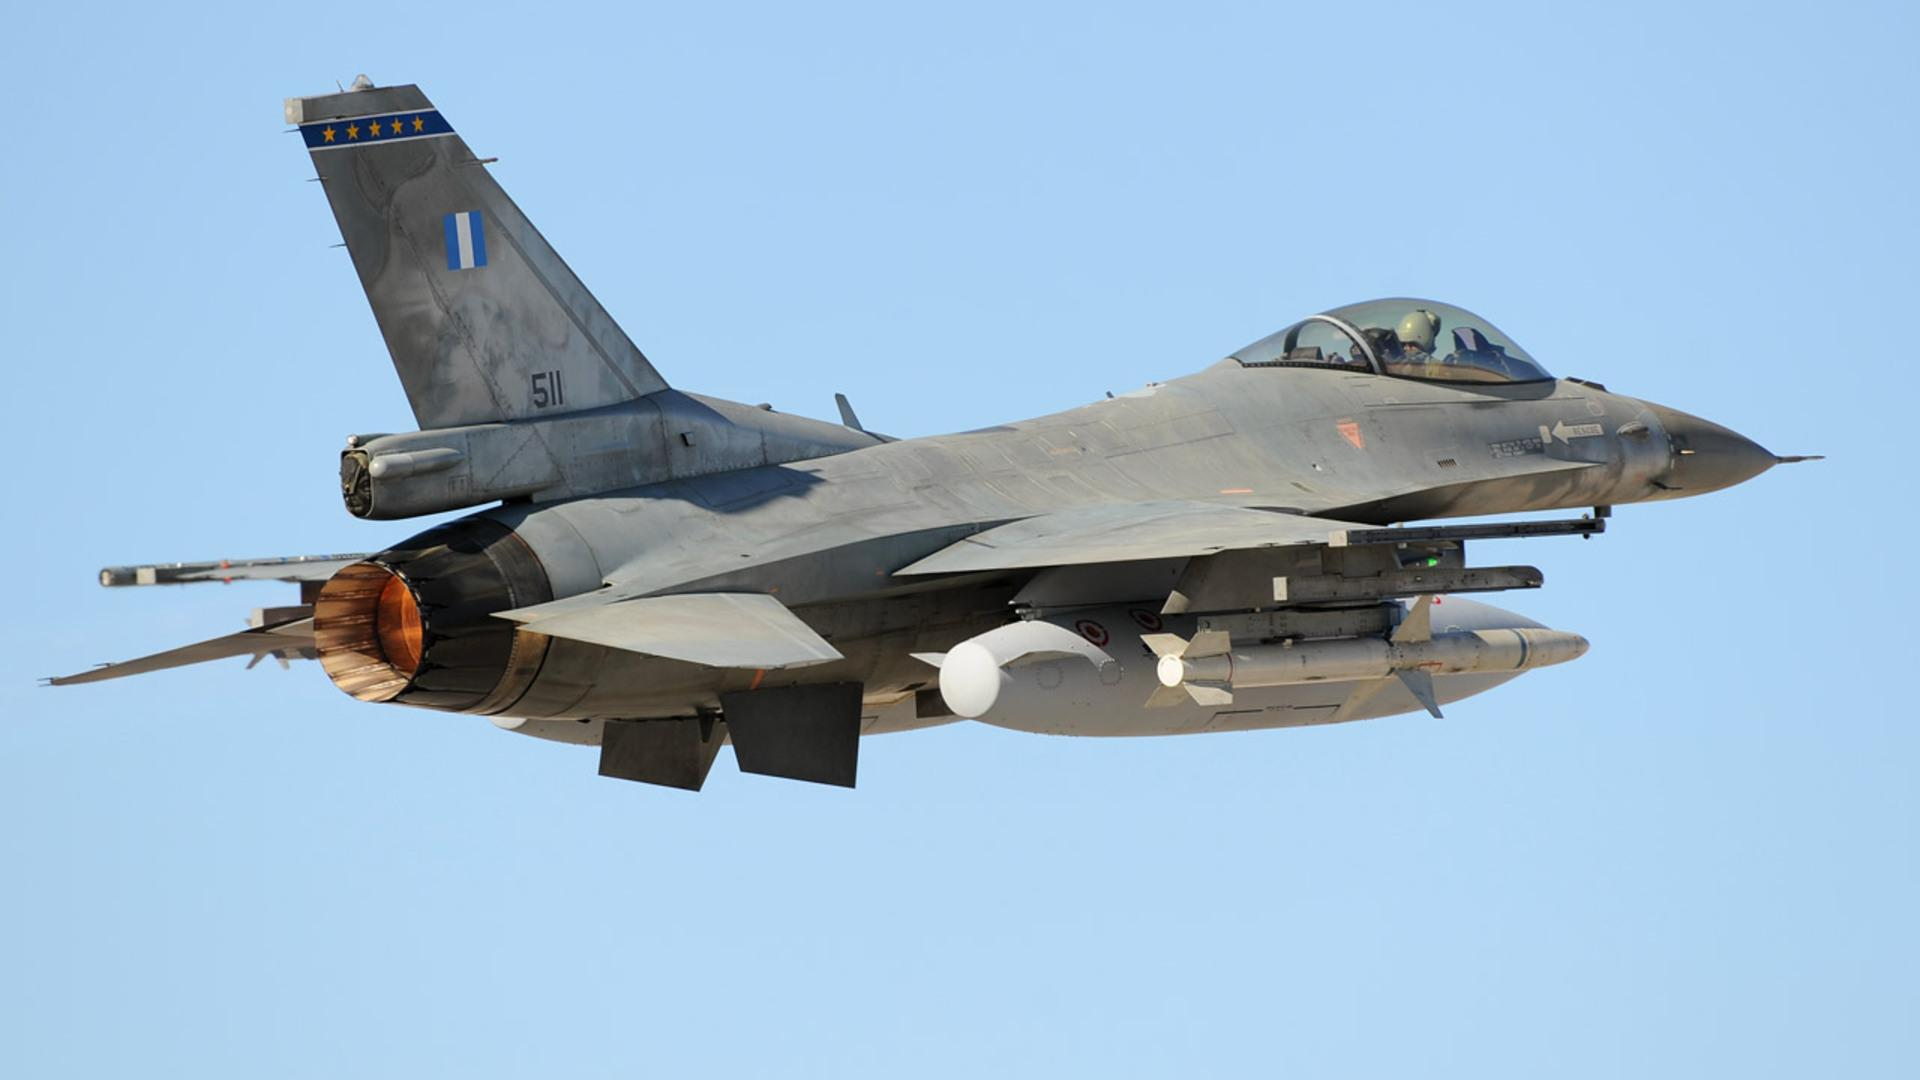 General Dynamics F-16 Fighting Falcon wallpapers HD quality